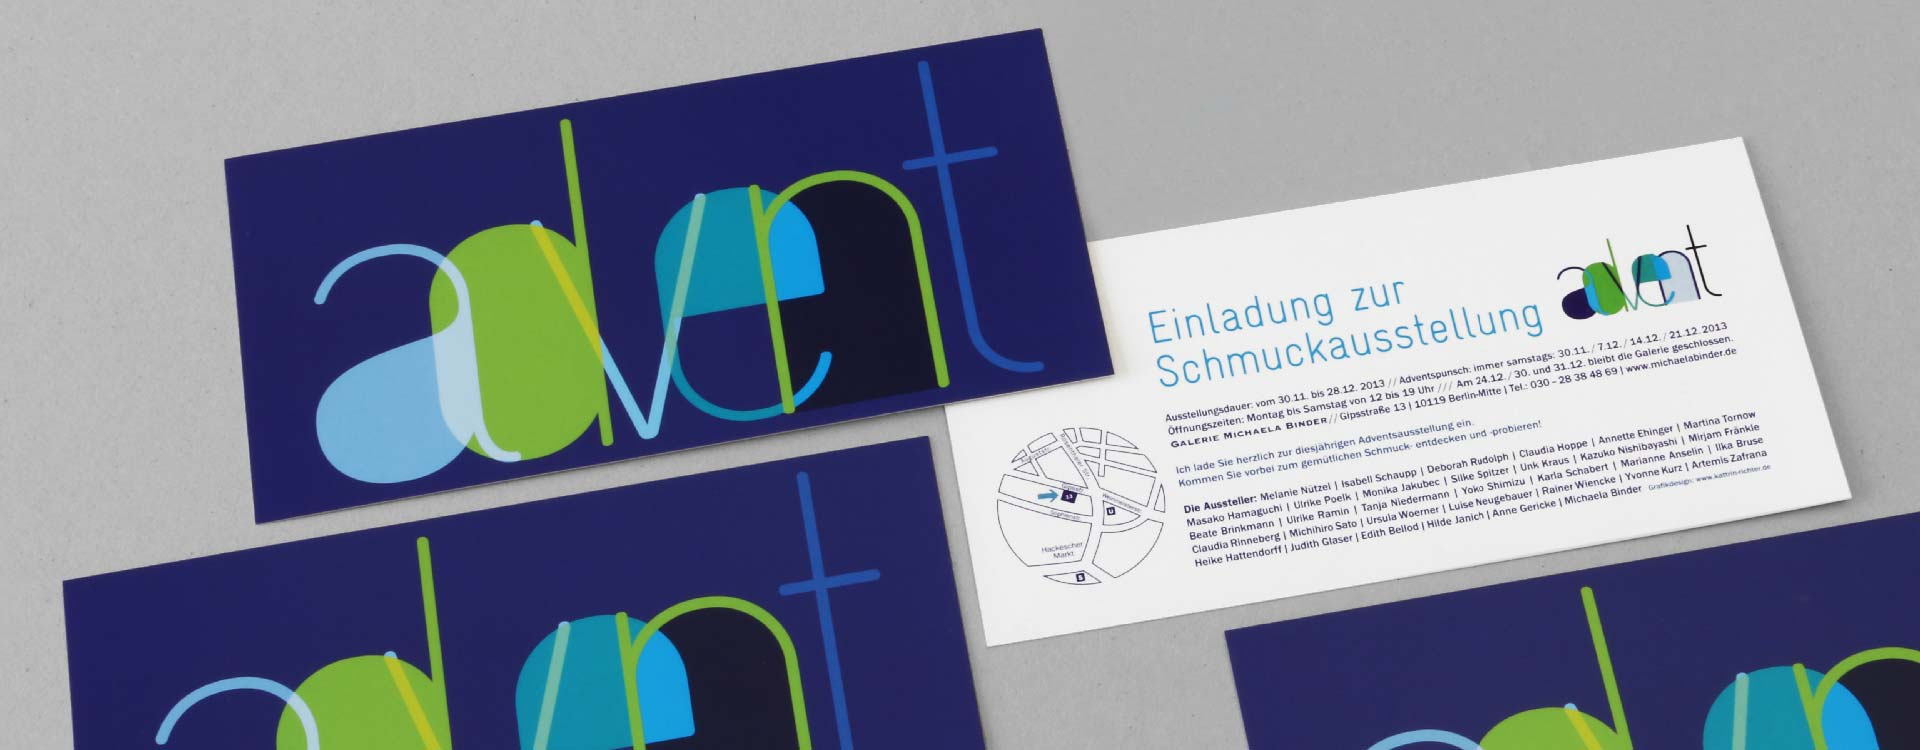 Invitation card for the jewellery exhibition 2013 in the gallery of Michaela Binder, Berlin; Design: Kattrin Richter | Graphic Design Studio